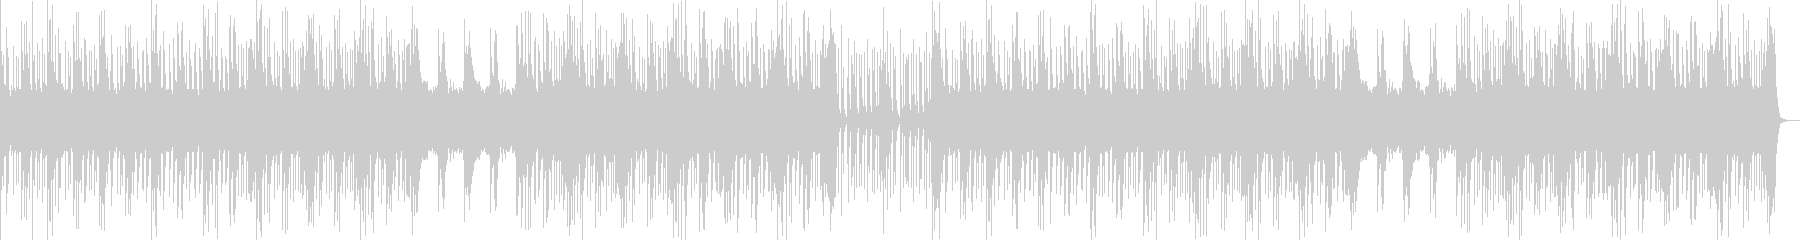 Japanese drum and Shinobue festival music's unreproduced waveform